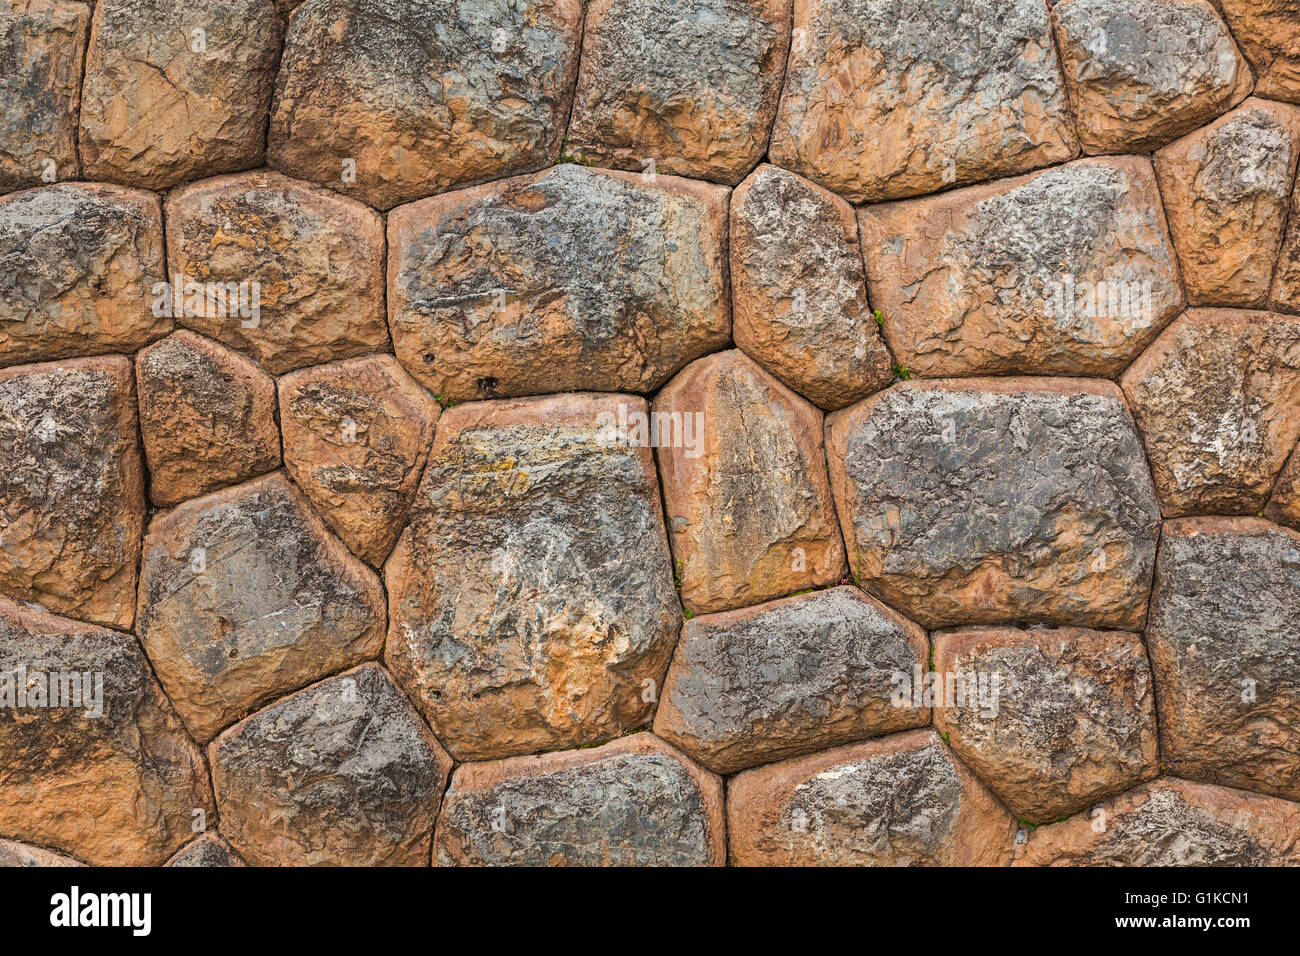 Abstract image of a dry stacked Incan wall in the Andean village of Chinchero, Peru - Stock Image